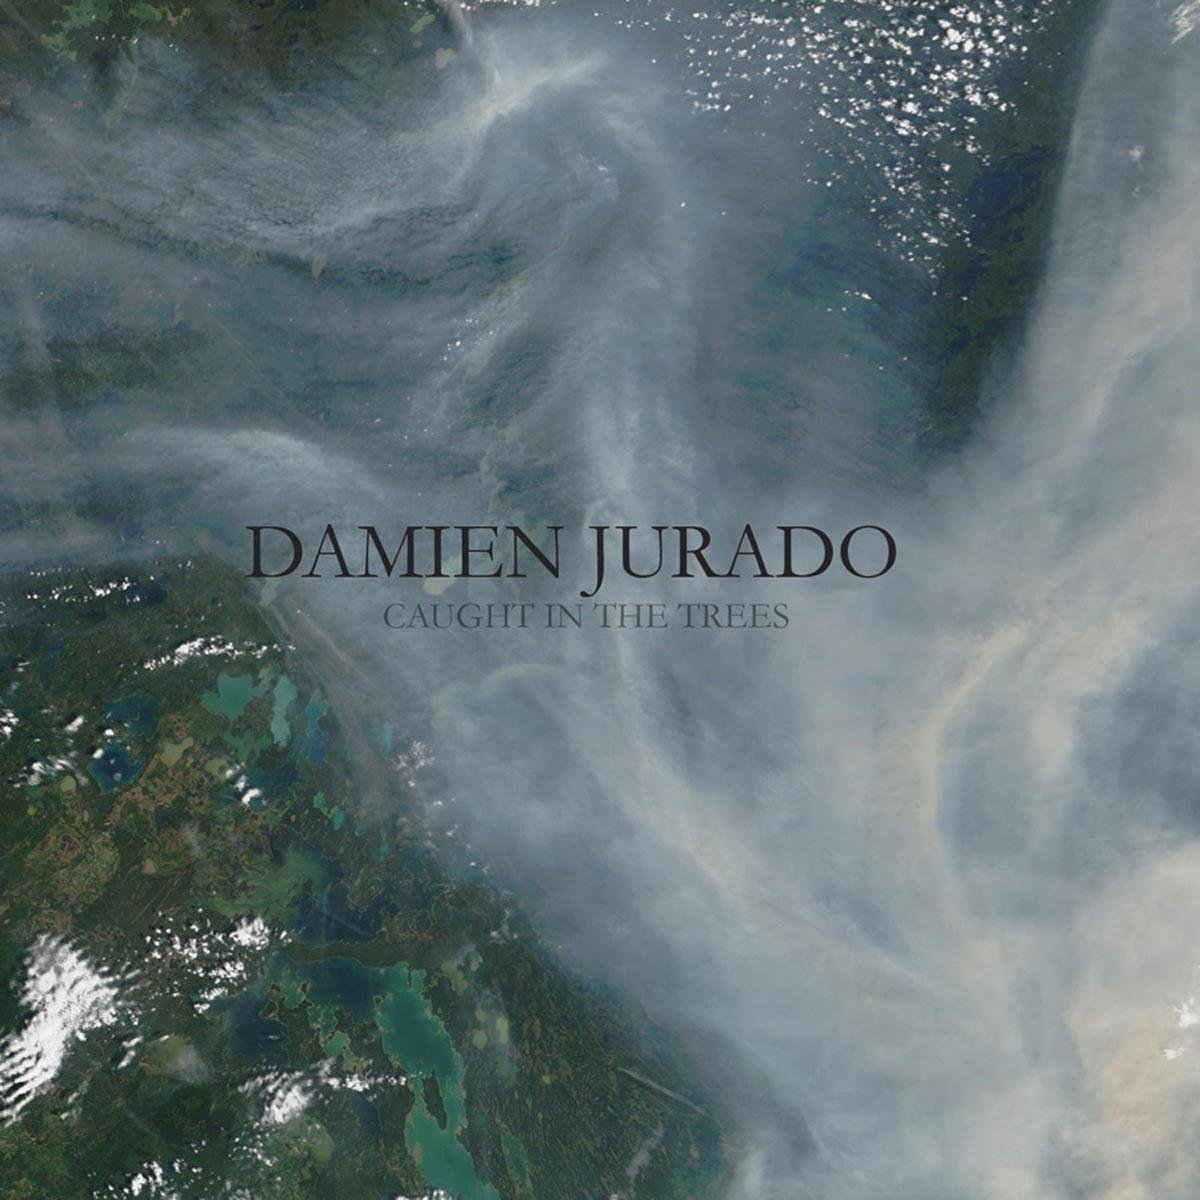 Damien Jurado, Caught in the Trees